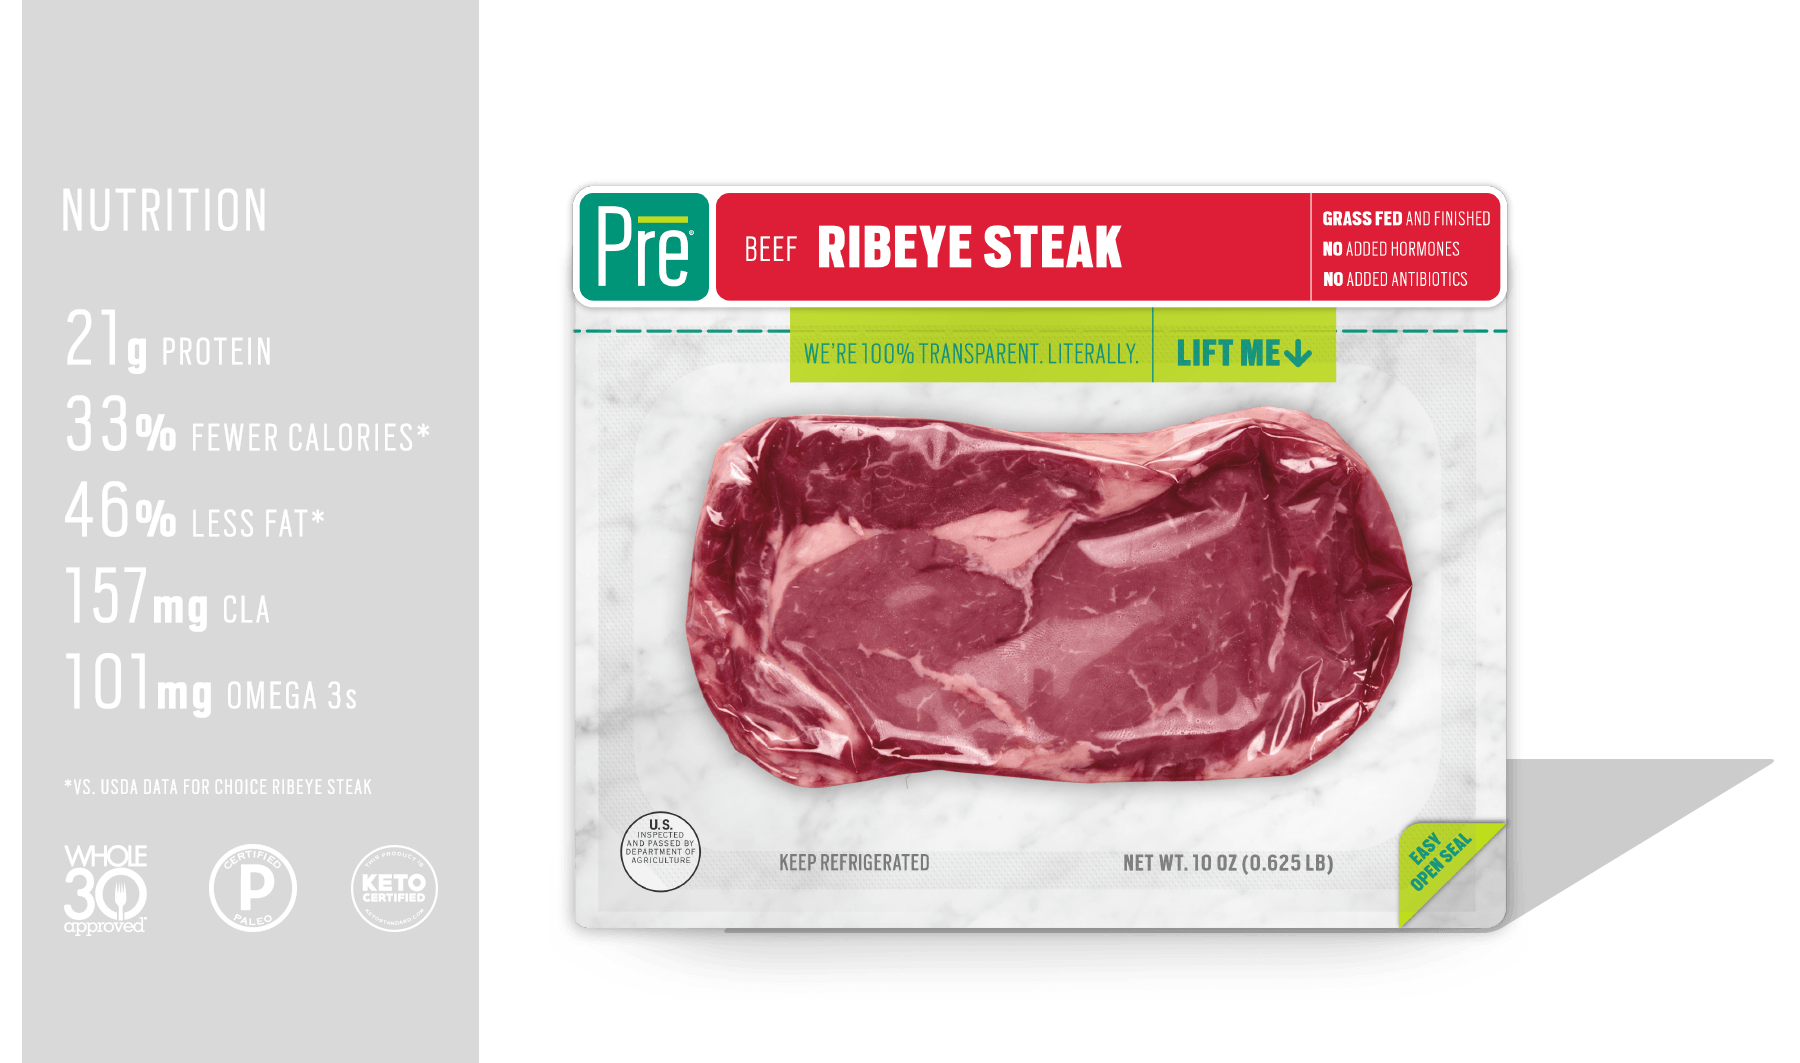 Sourcing and Nutrition for Pre Beef